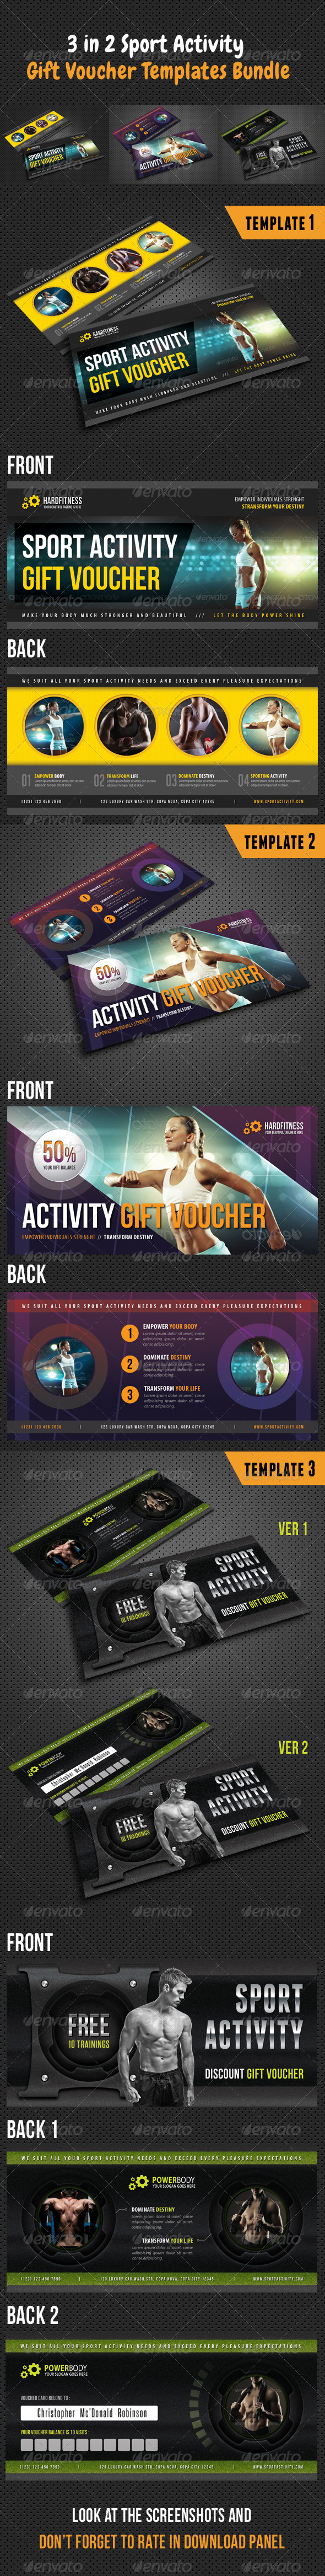 GraphicRiver 3 in 1 Sport Activity Gift Voucher Bundle 01 8516438